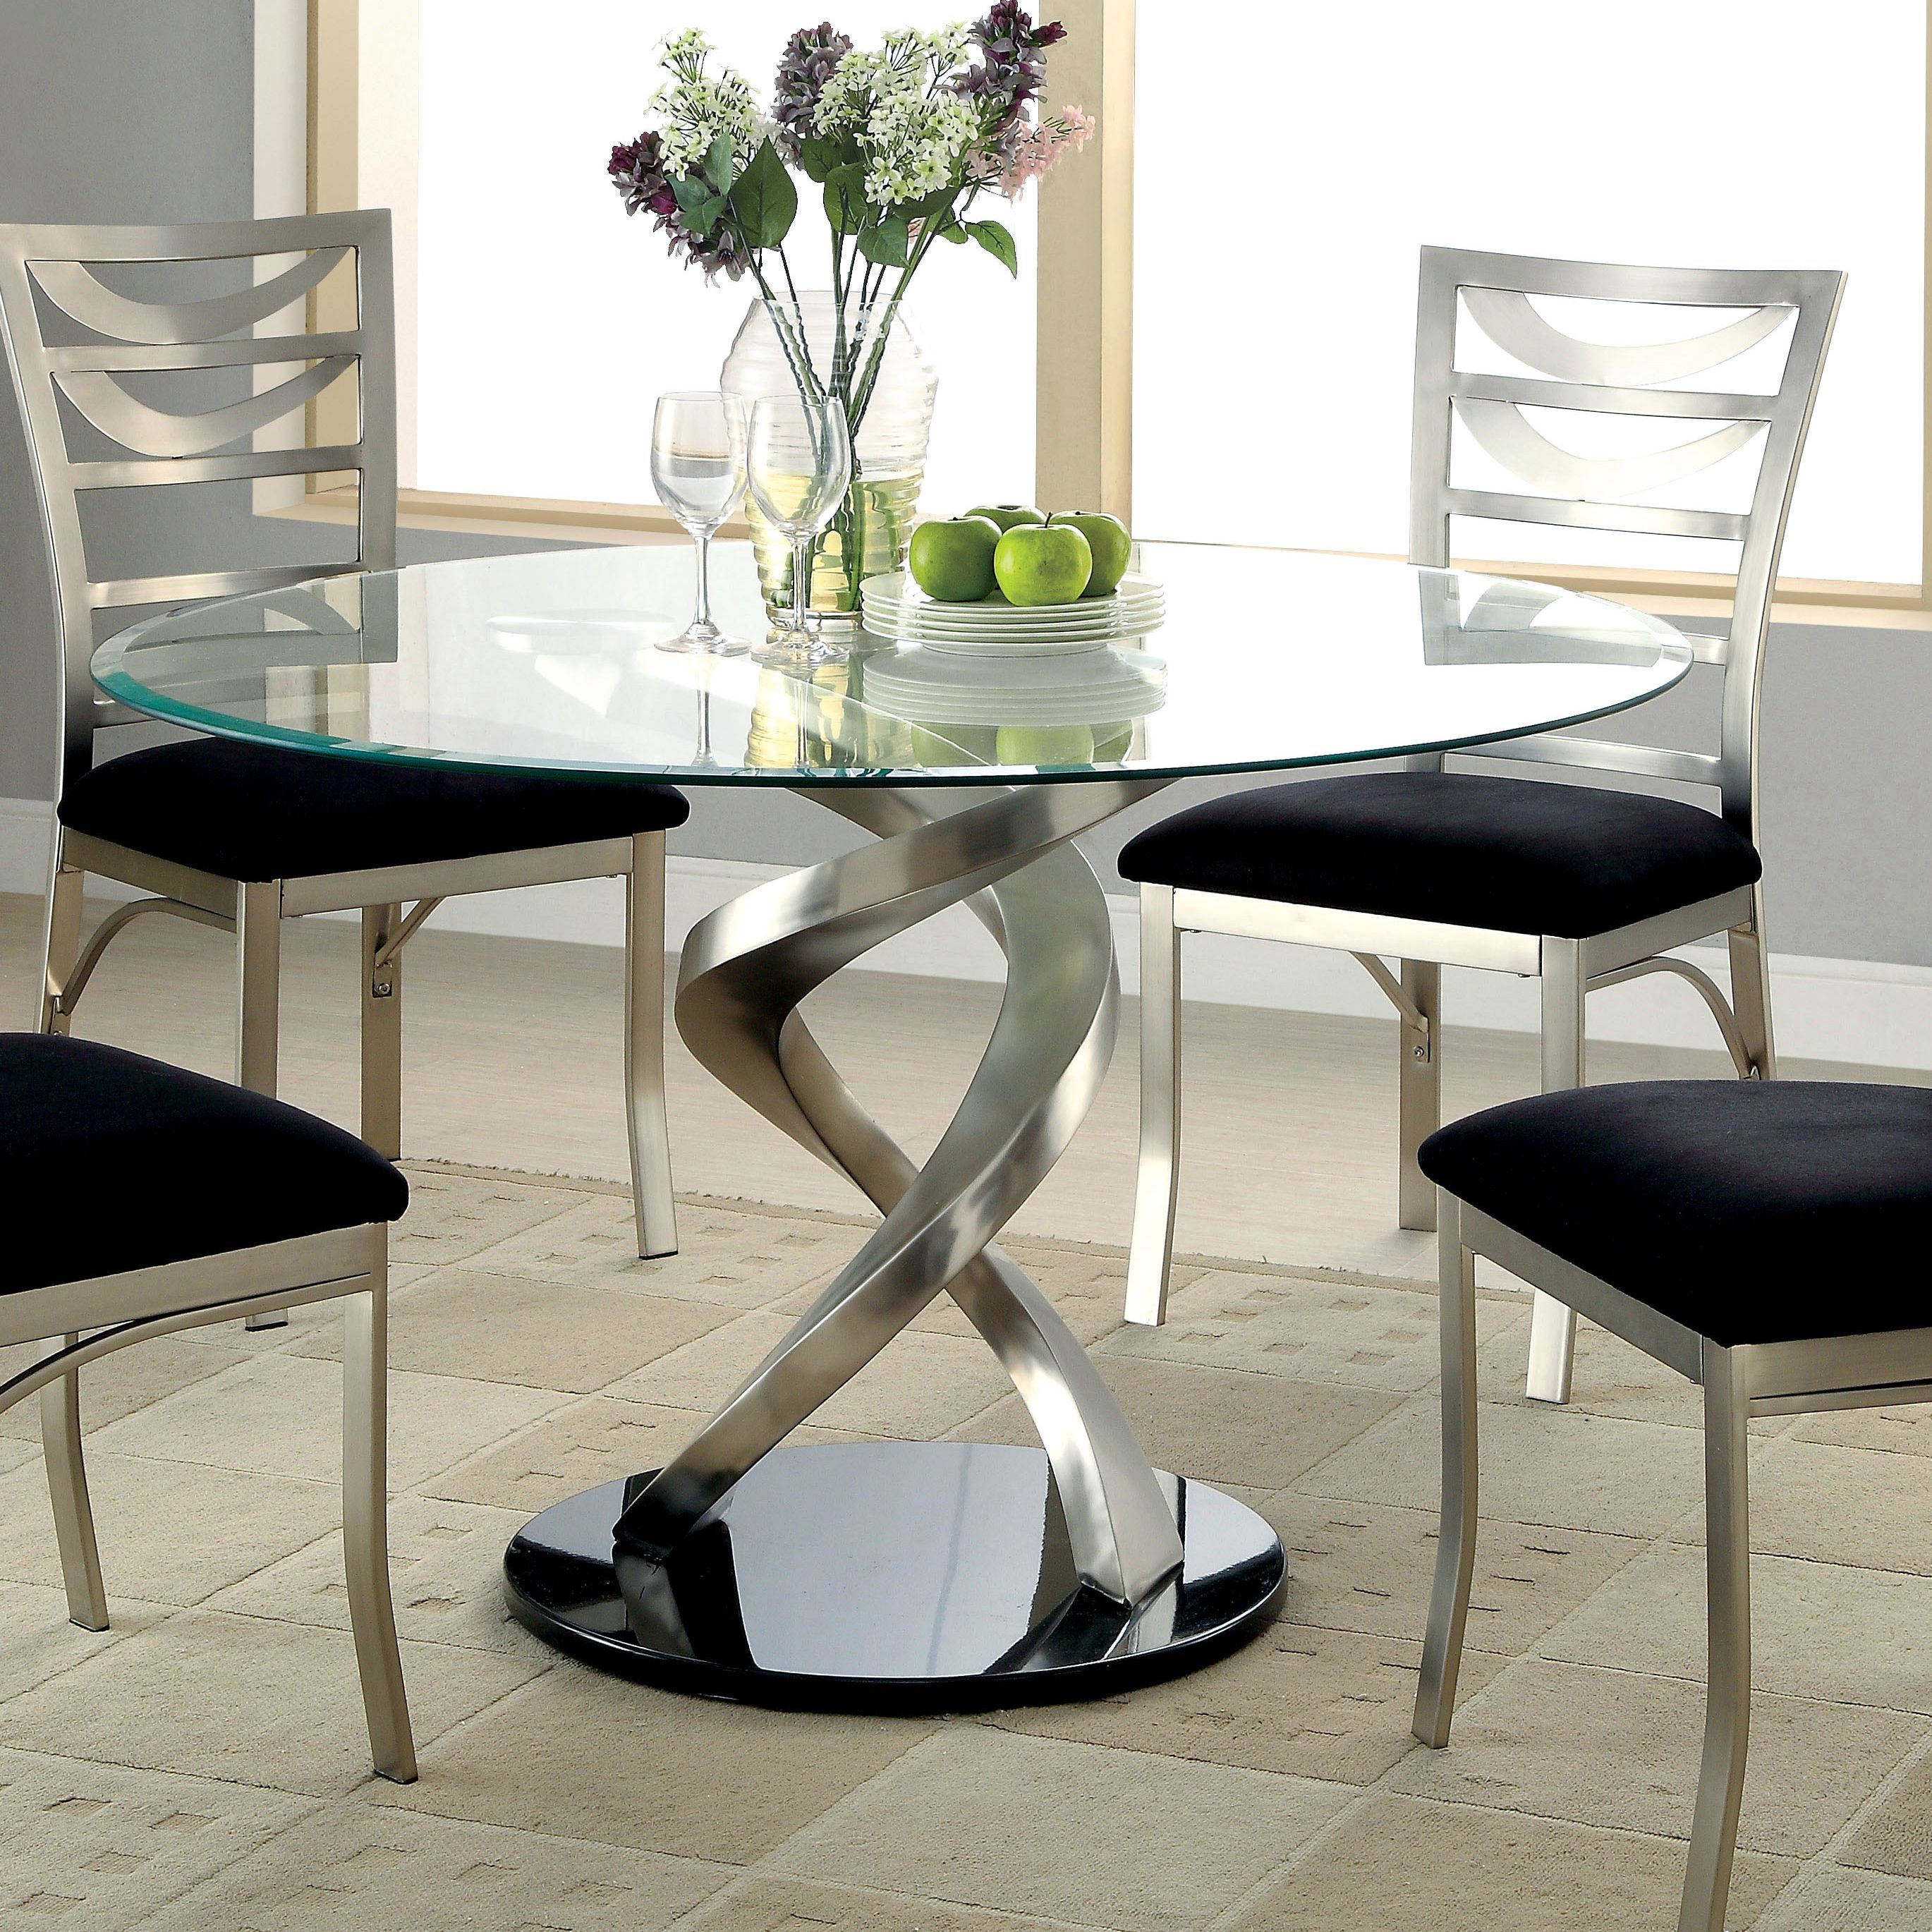 Bring Modern Sculpture Designs To The Dining Room With This Elegant And Swirling Round Table